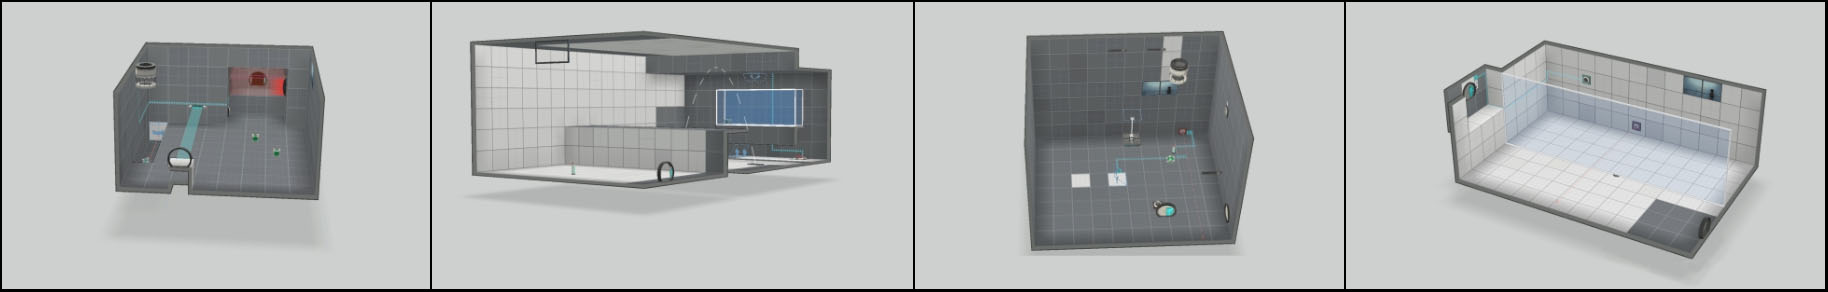 Some of the many puzzle and room concepts made with PTI. Keeping it simple allowed for exploration into various ideas and variants.